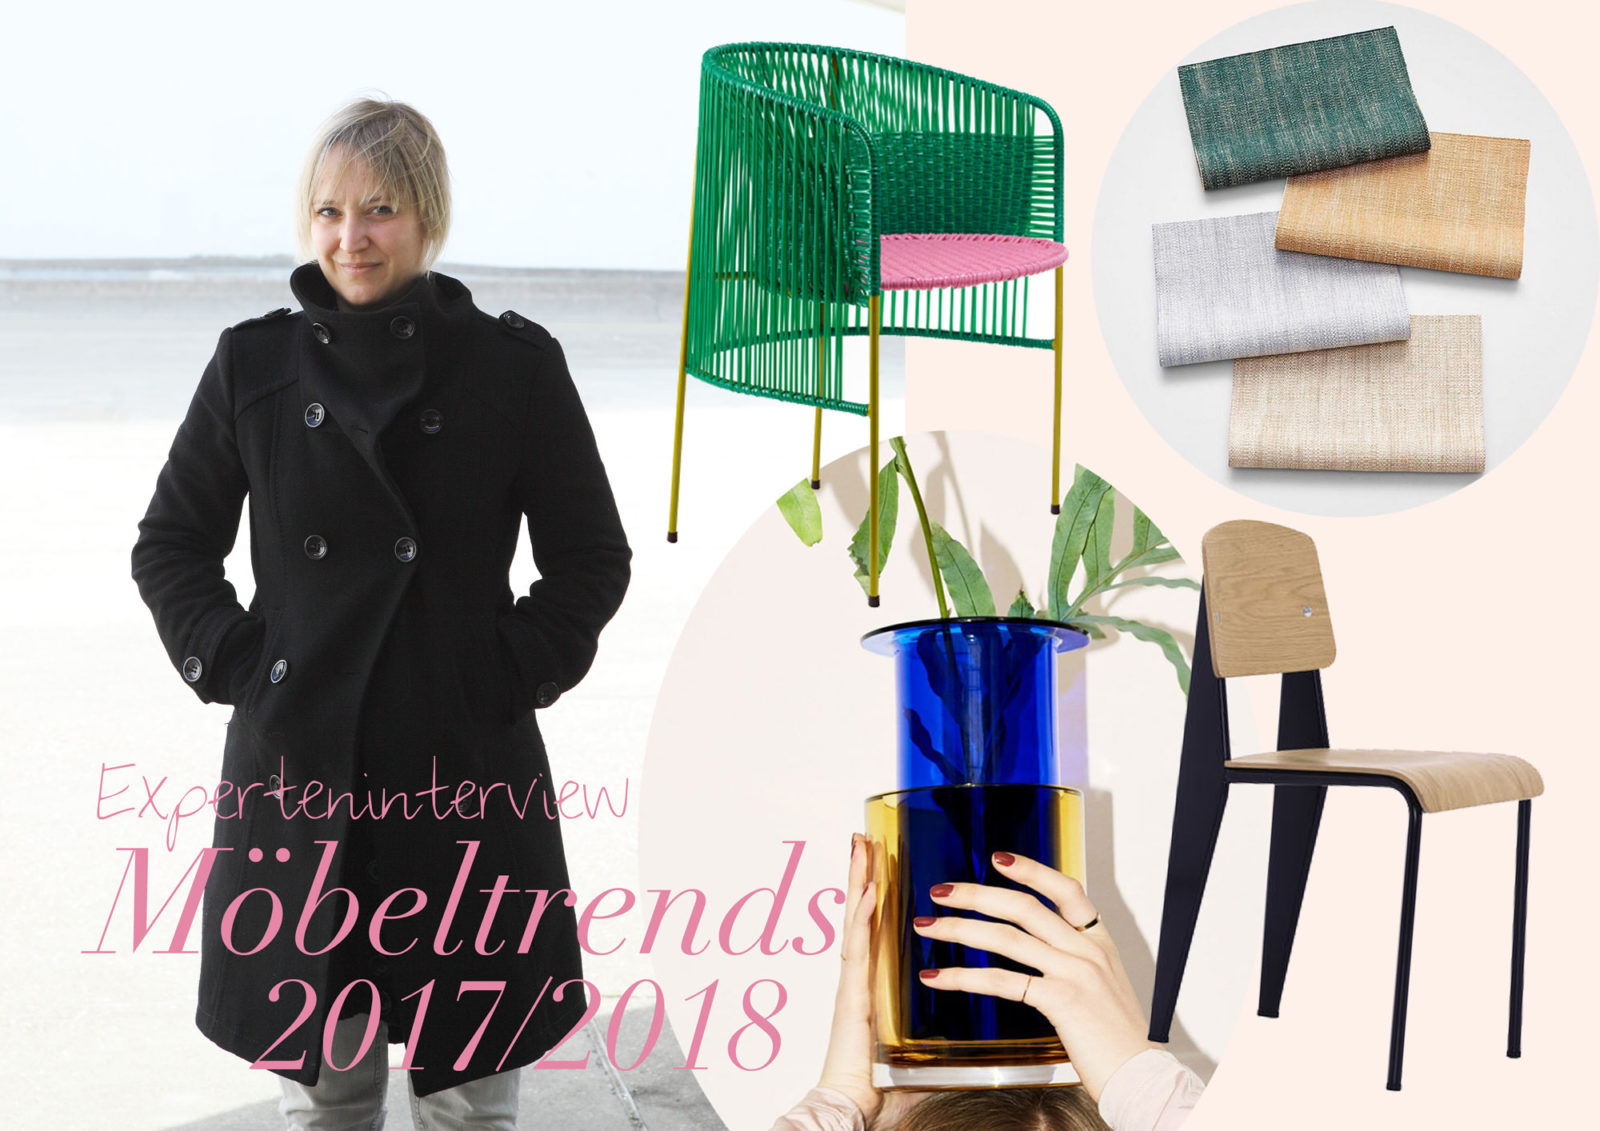 die m bel trends 2017 18 das wohndesign ist nicht so schnelllebig wie die mode journelles. Black Bedroom Furniture Sets. Home Design Ideas